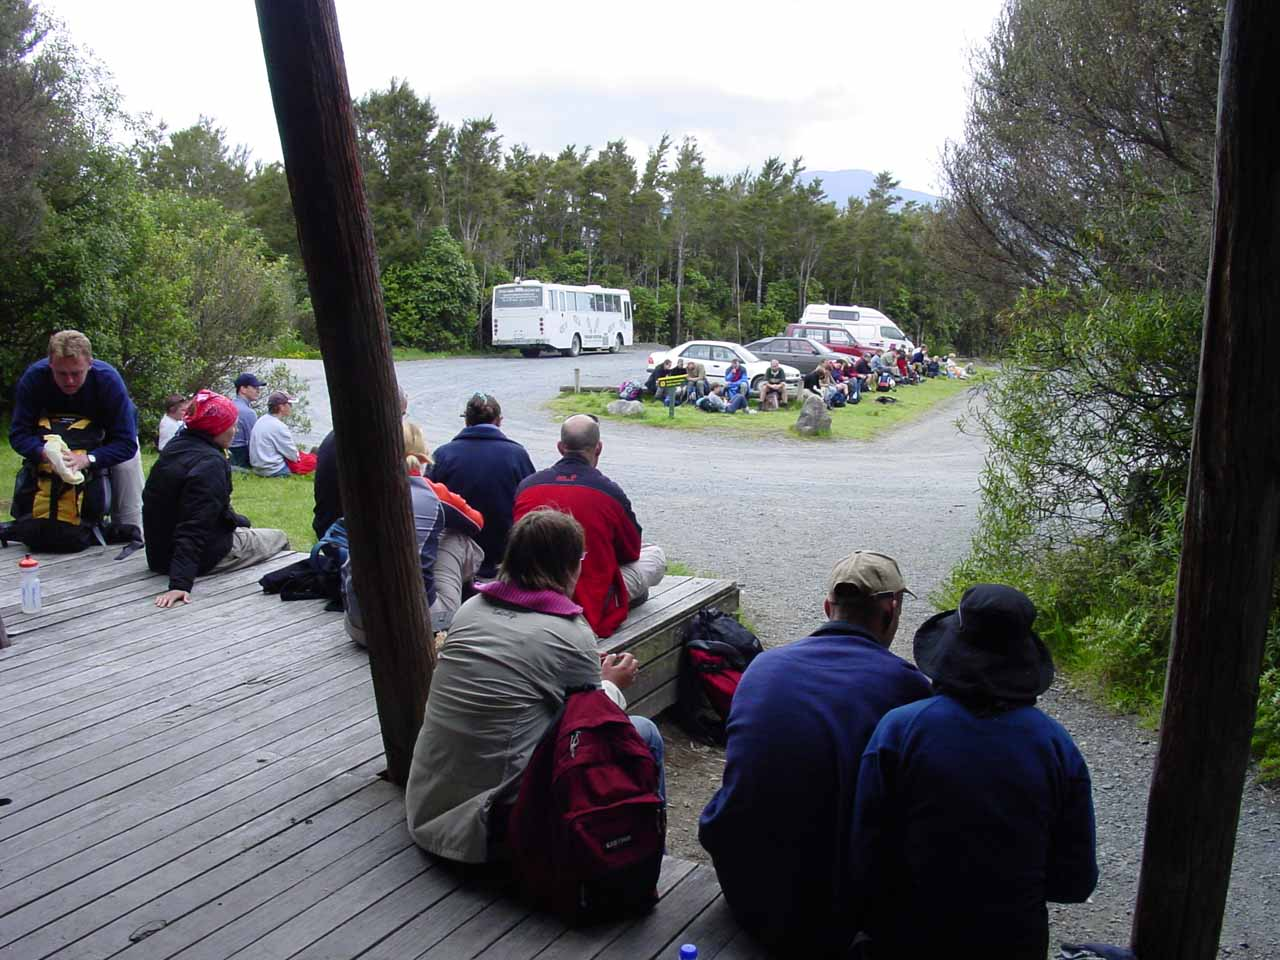 Waiting for our shuttle ride at the end of the Tongariro Crossing